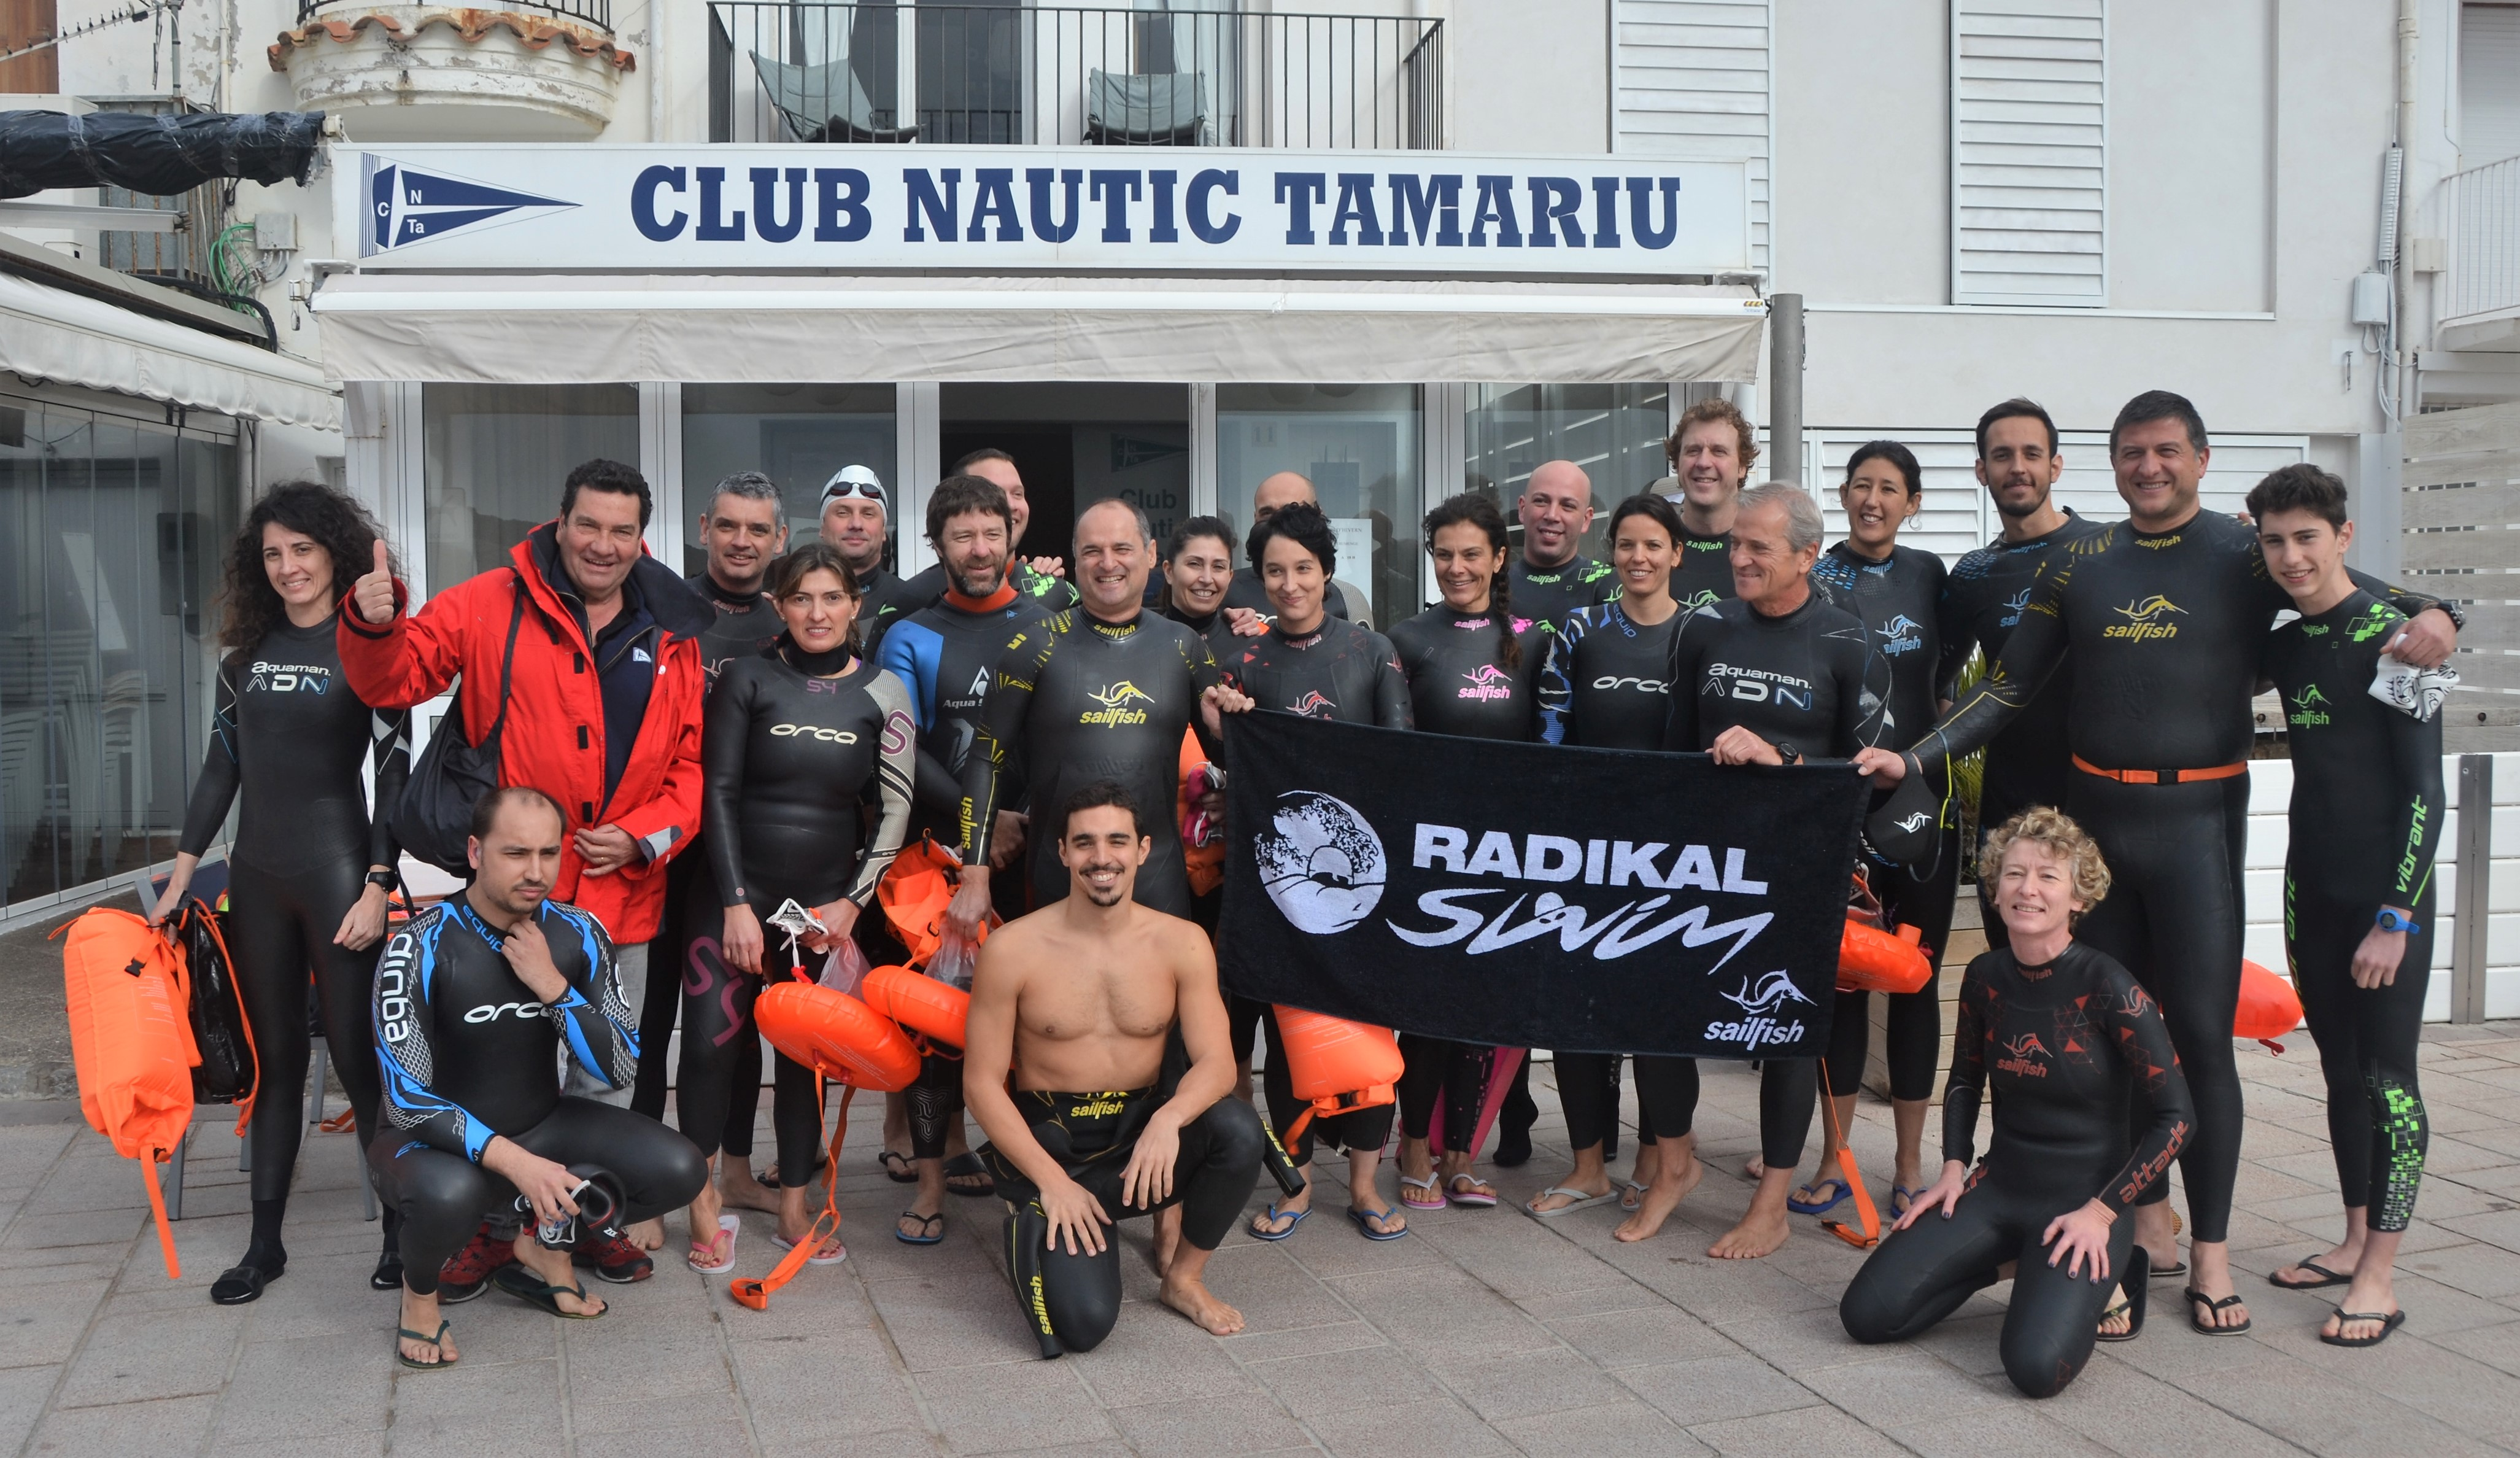 A great open water swim in Tamariu!